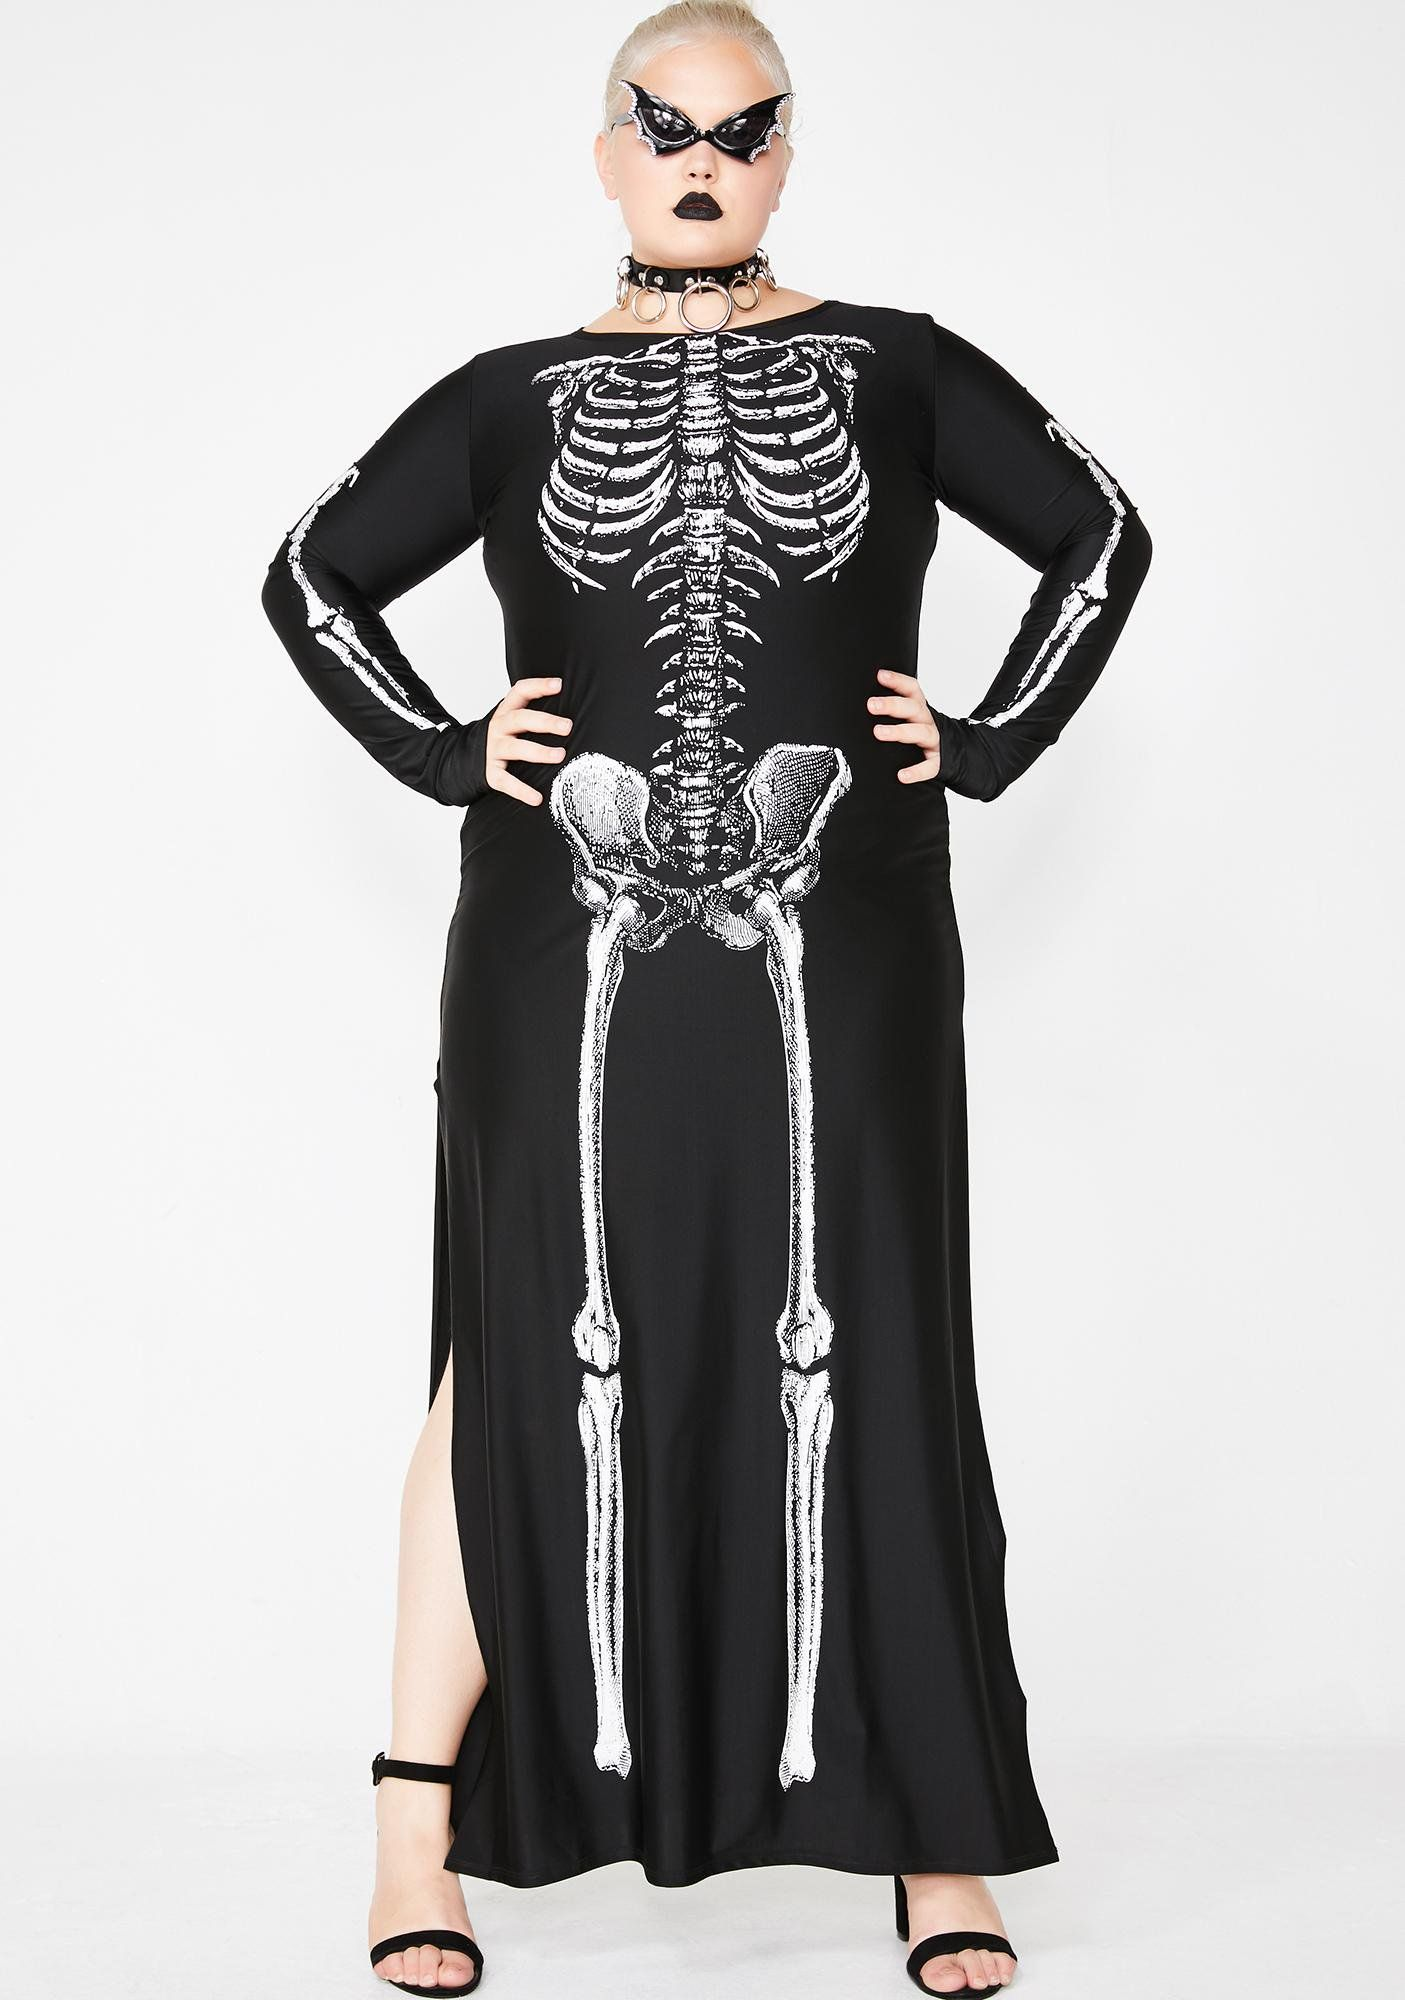 Free, Fast Shipping On Spooky Bone Afied Babe Costume At Dolls